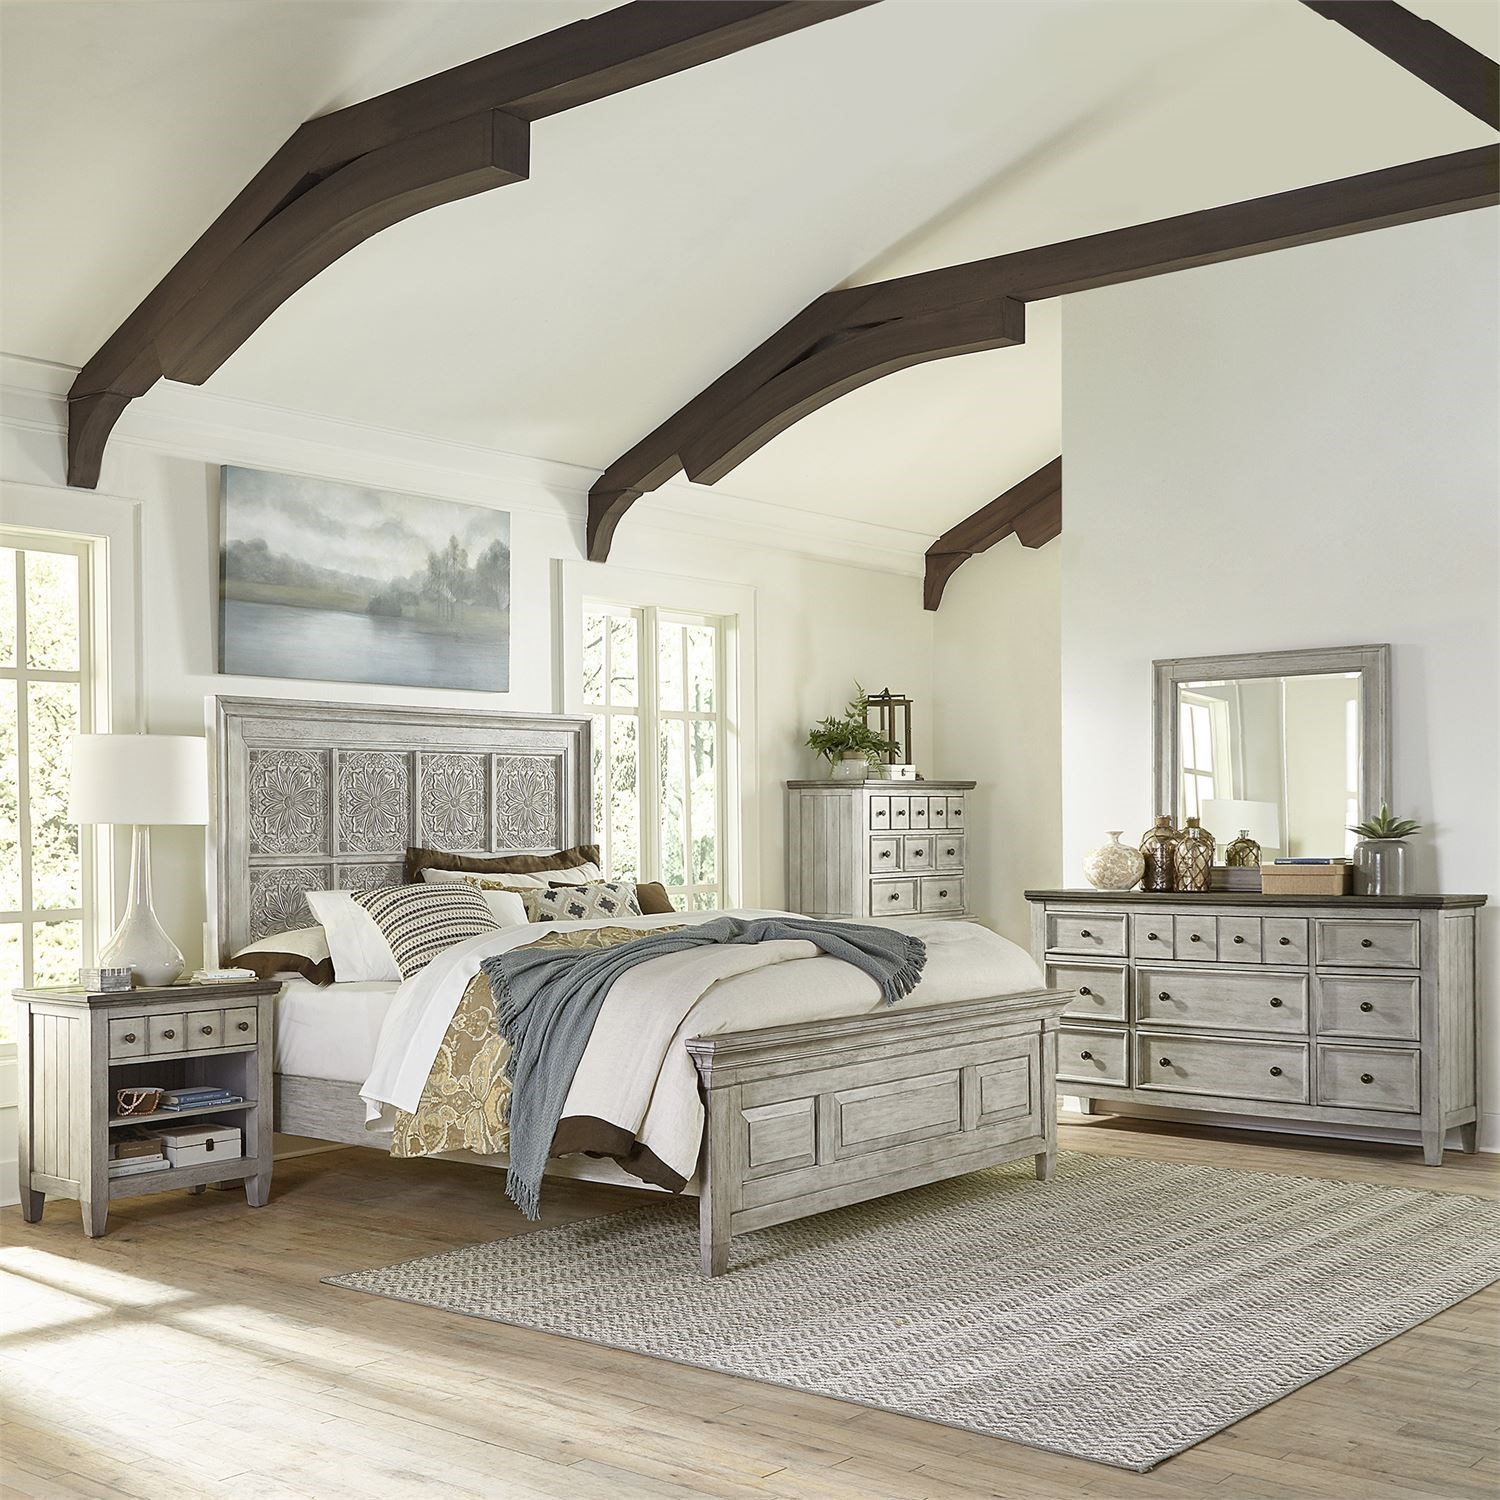 Heartland Queen Bedroom Group by Liberty Furniture at Upper Room Home Furnishings